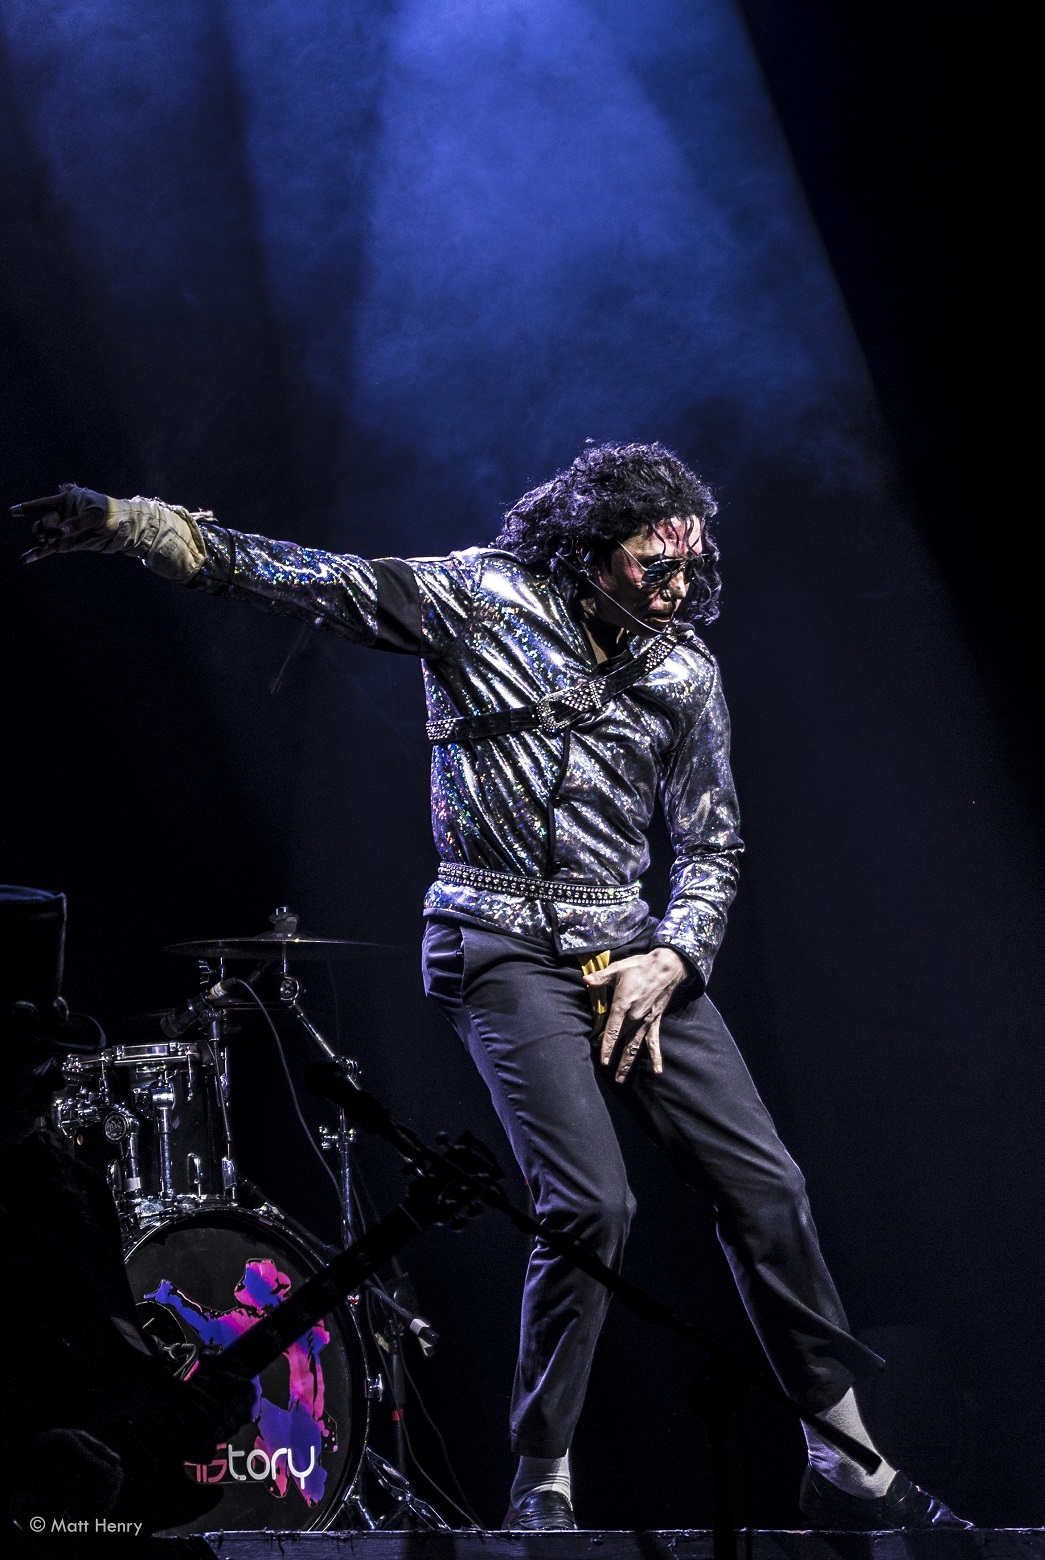 BWW Review: MICHAEL JACKSON HISTORY SHOW at Artscape Opera House Hits All The Right Notes